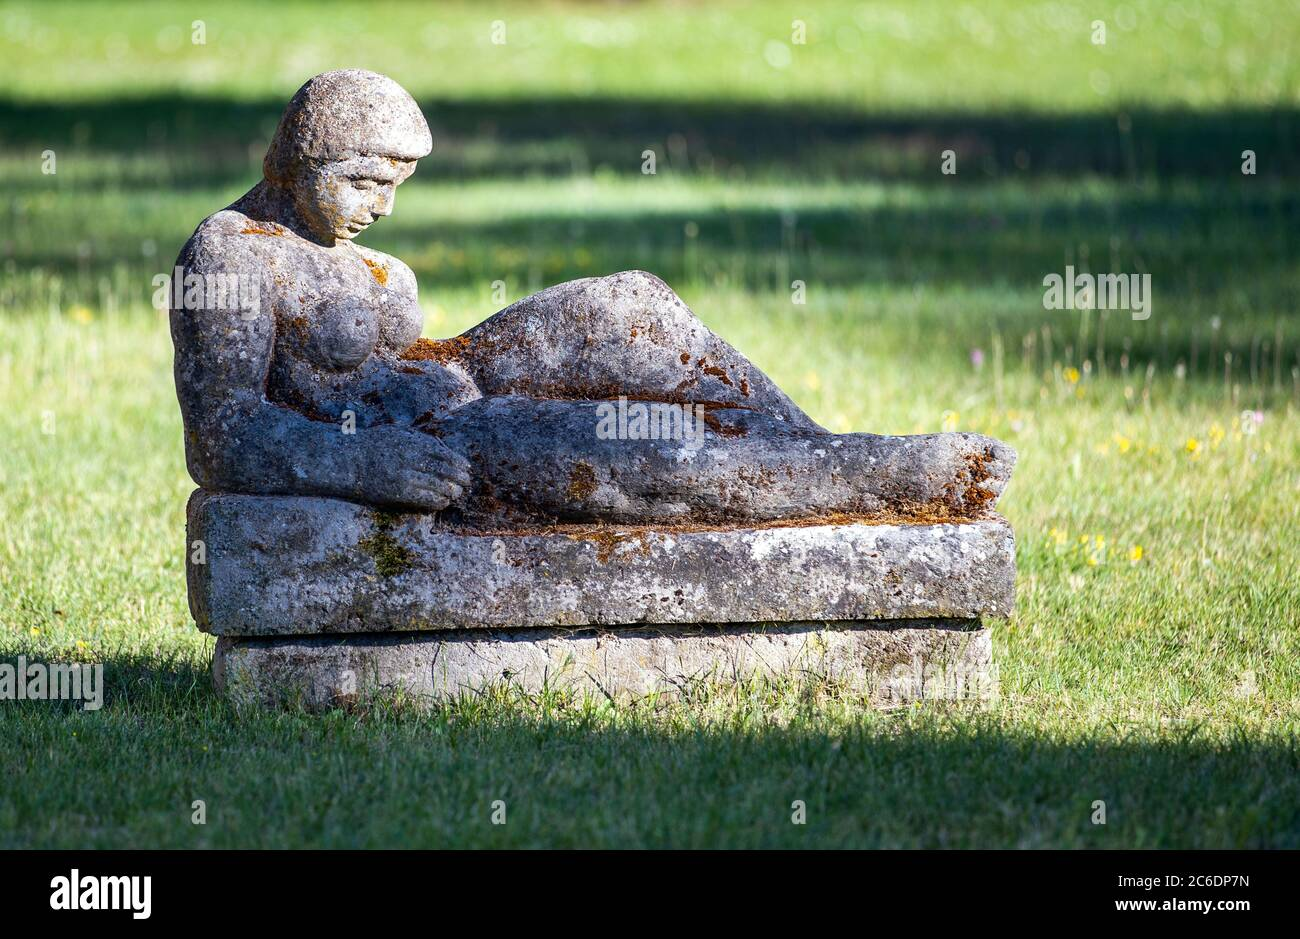 Neustrelitz, Germany. 23rd June, 2020. Sculptures in a green area behind the Kavaliershaus at the present Schlossplatz. Credit: Jens Büttner/dpa-Zentralbild/ZB/dpa/Alamy Live News Stock Photo